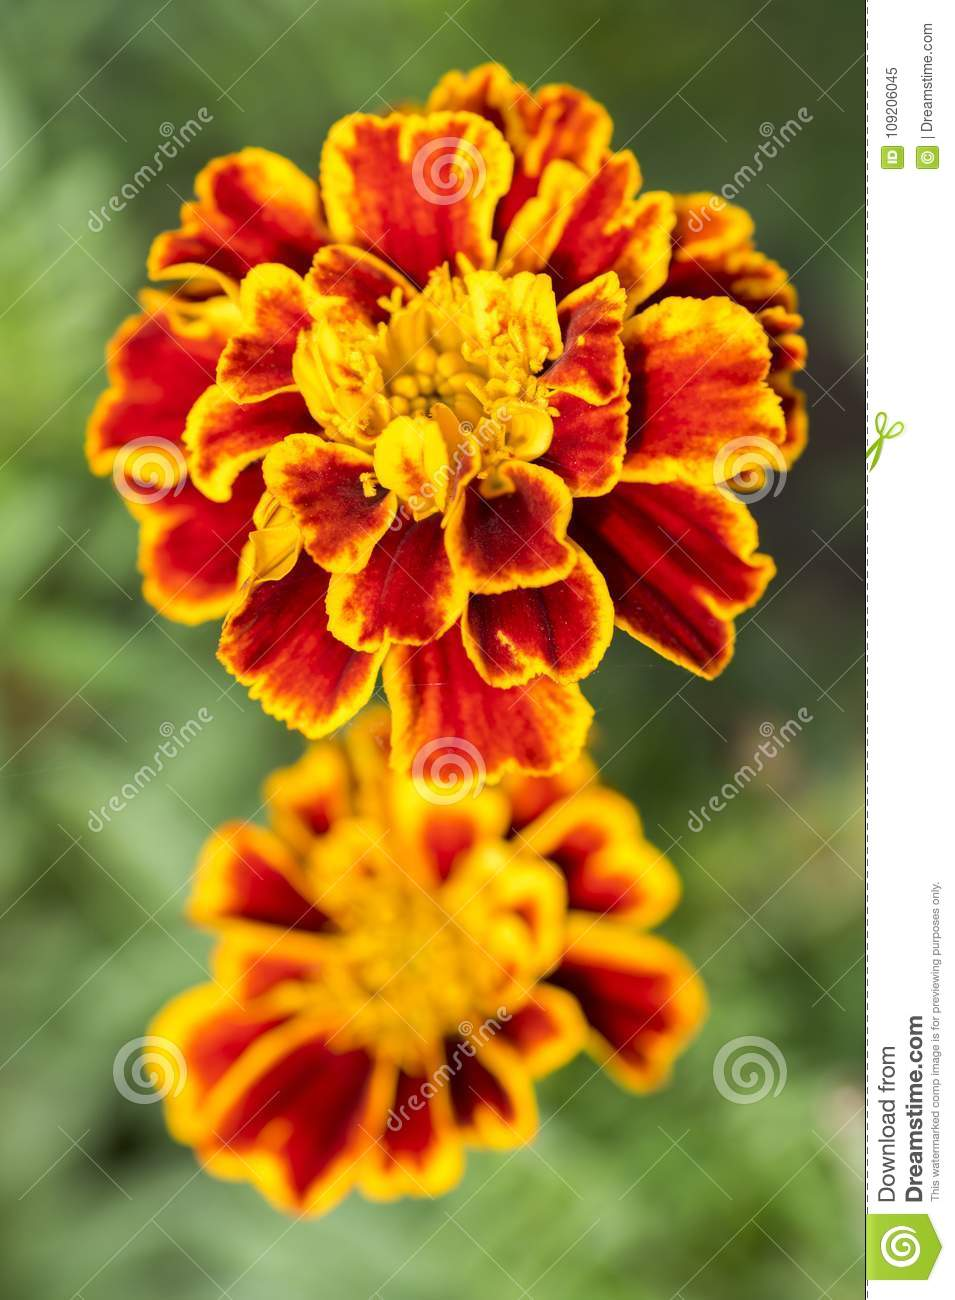 Green Orange Small Apartment Living Room Decor: Tagetes Patula French Marigold In Bloom, Orange Yellow